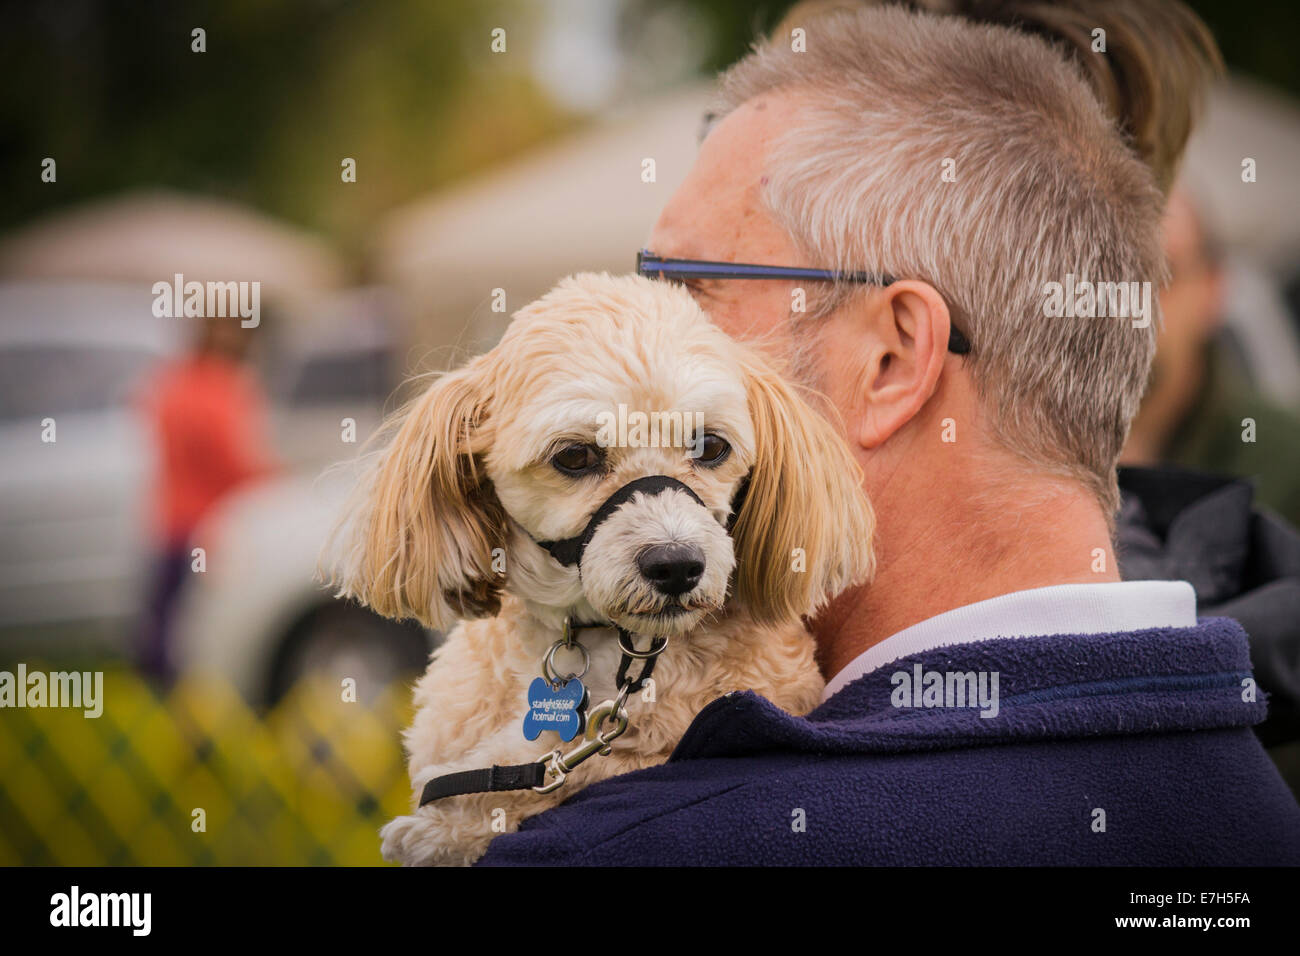 miniature-apricot-poodle-looking-over-ma